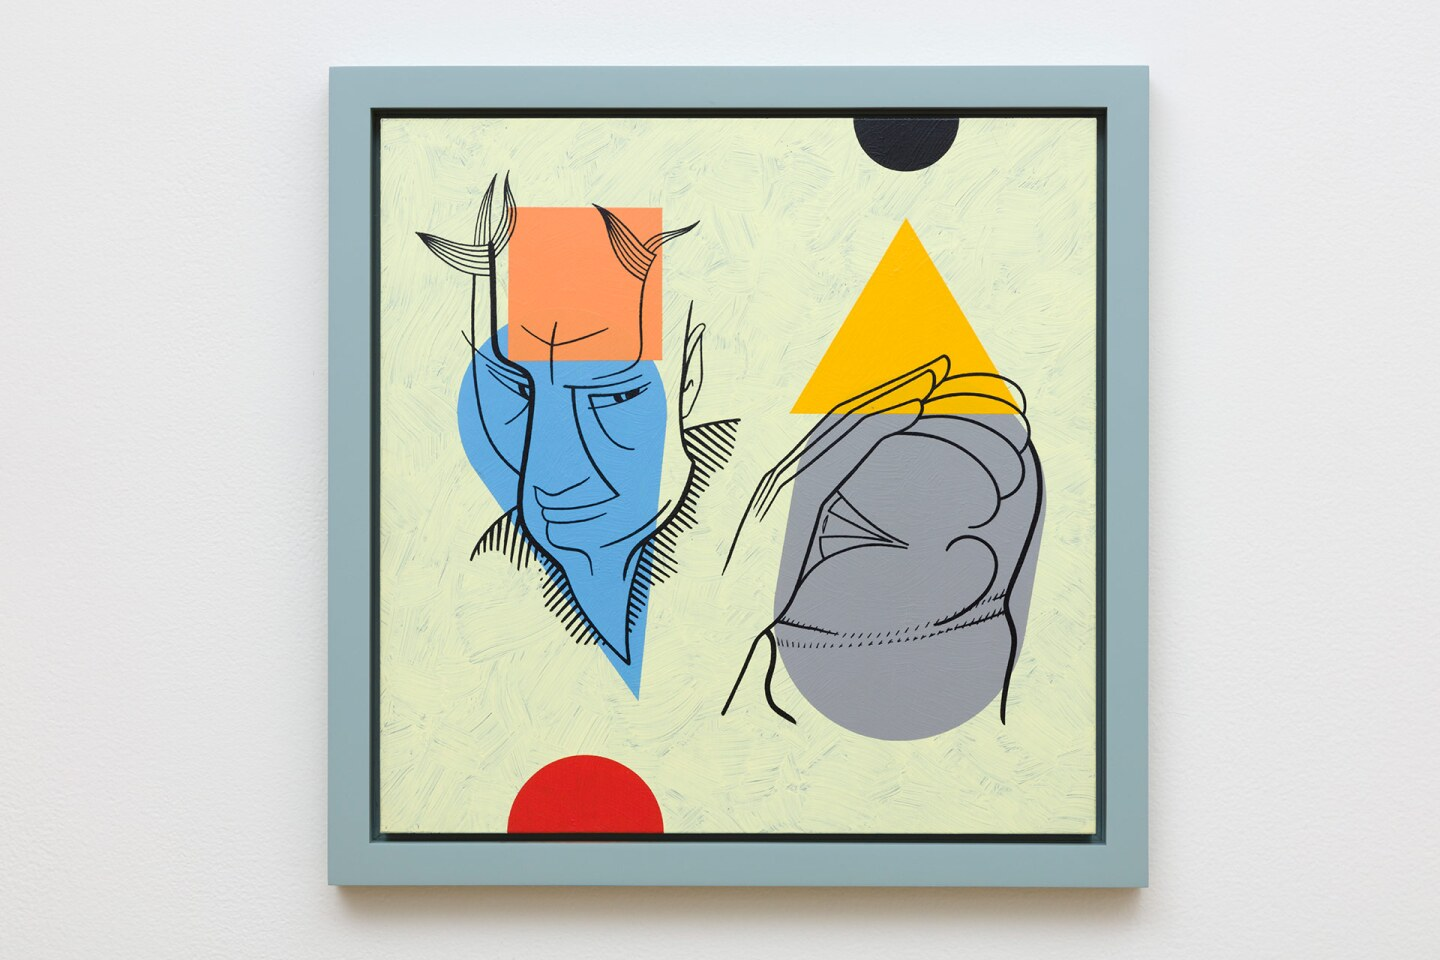 """Don Suggs """"The Same Clay,"""" 2018. Oil, acrylic and ink on plywood   © Don Suggs, Courtesy of L.A. Louver, Venice, California"""